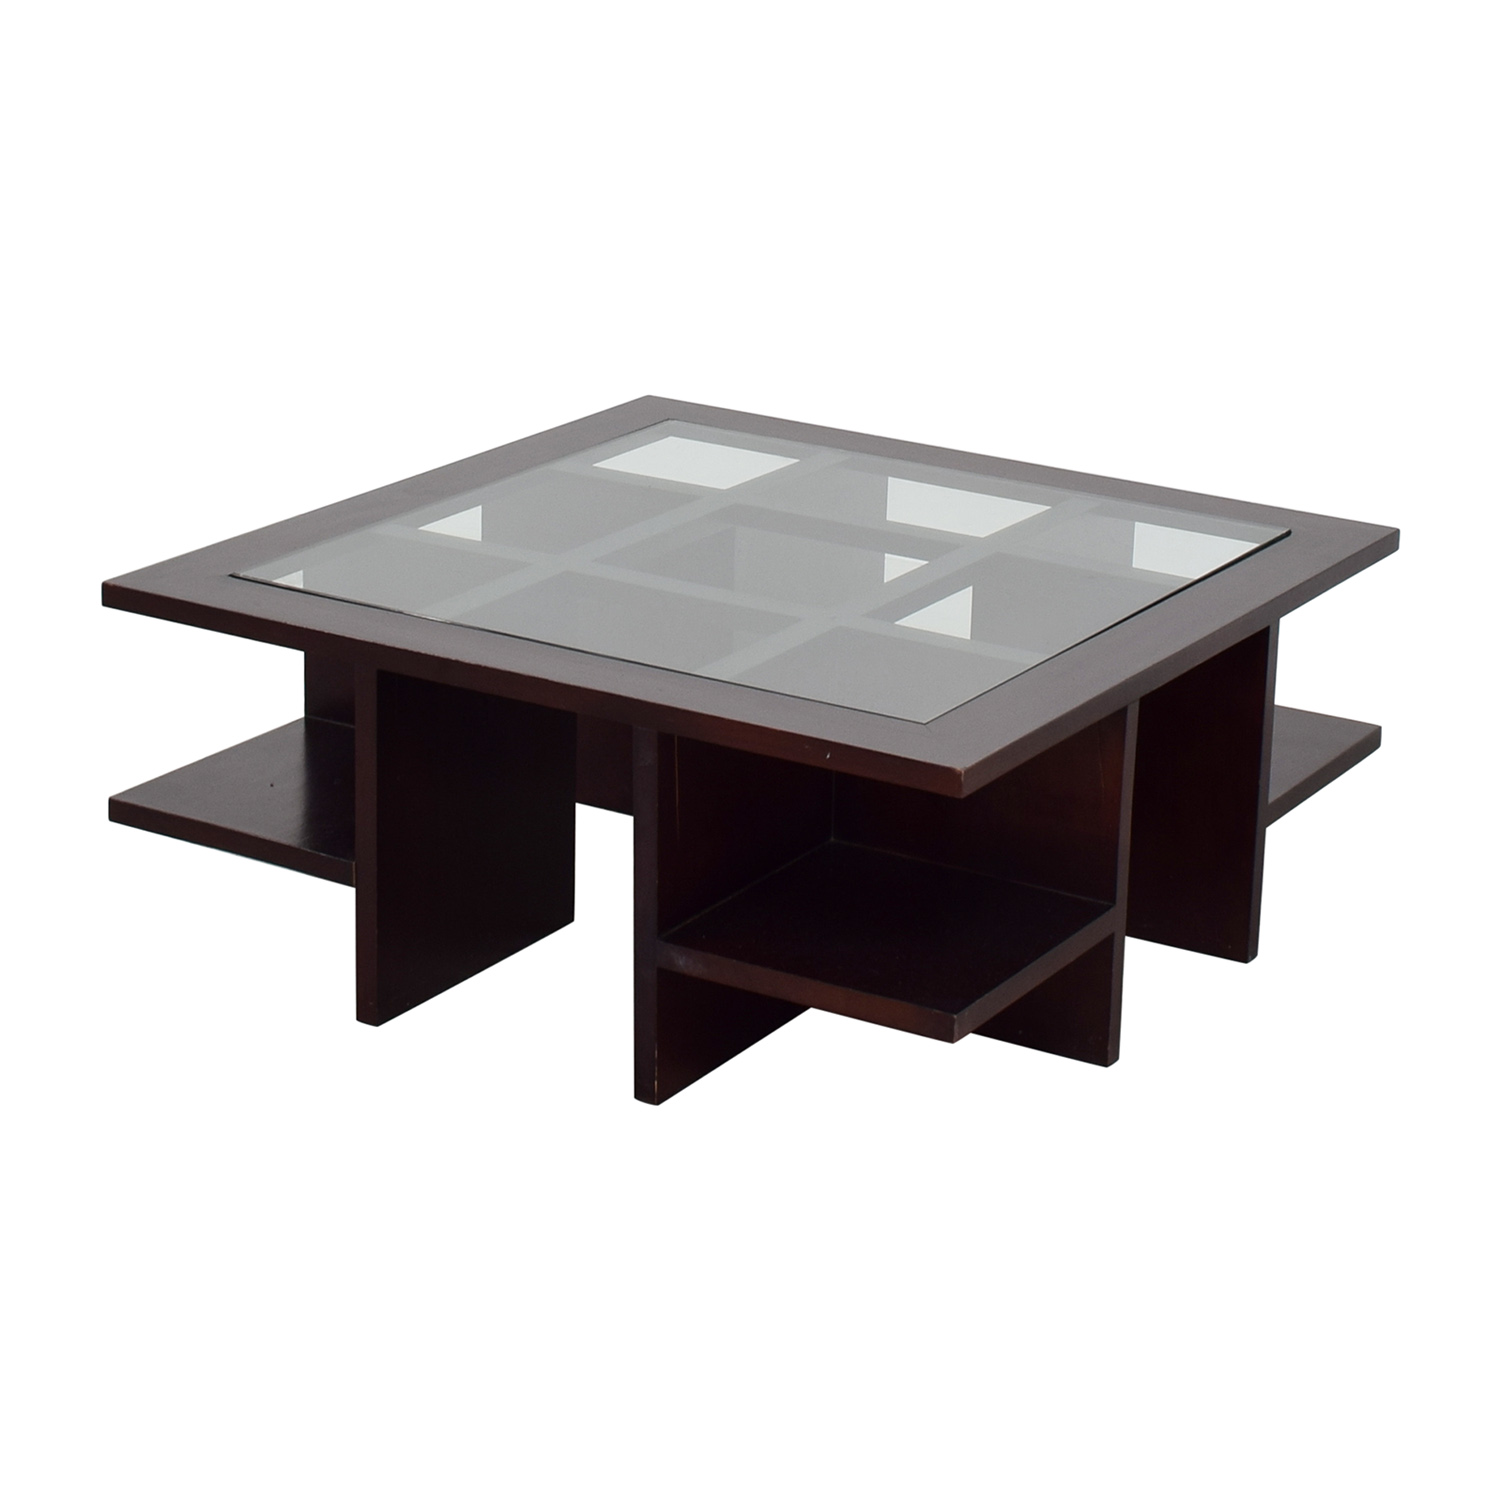 88 off moie moie wood and glass coffee table with side shelves tables Used glass coffee table